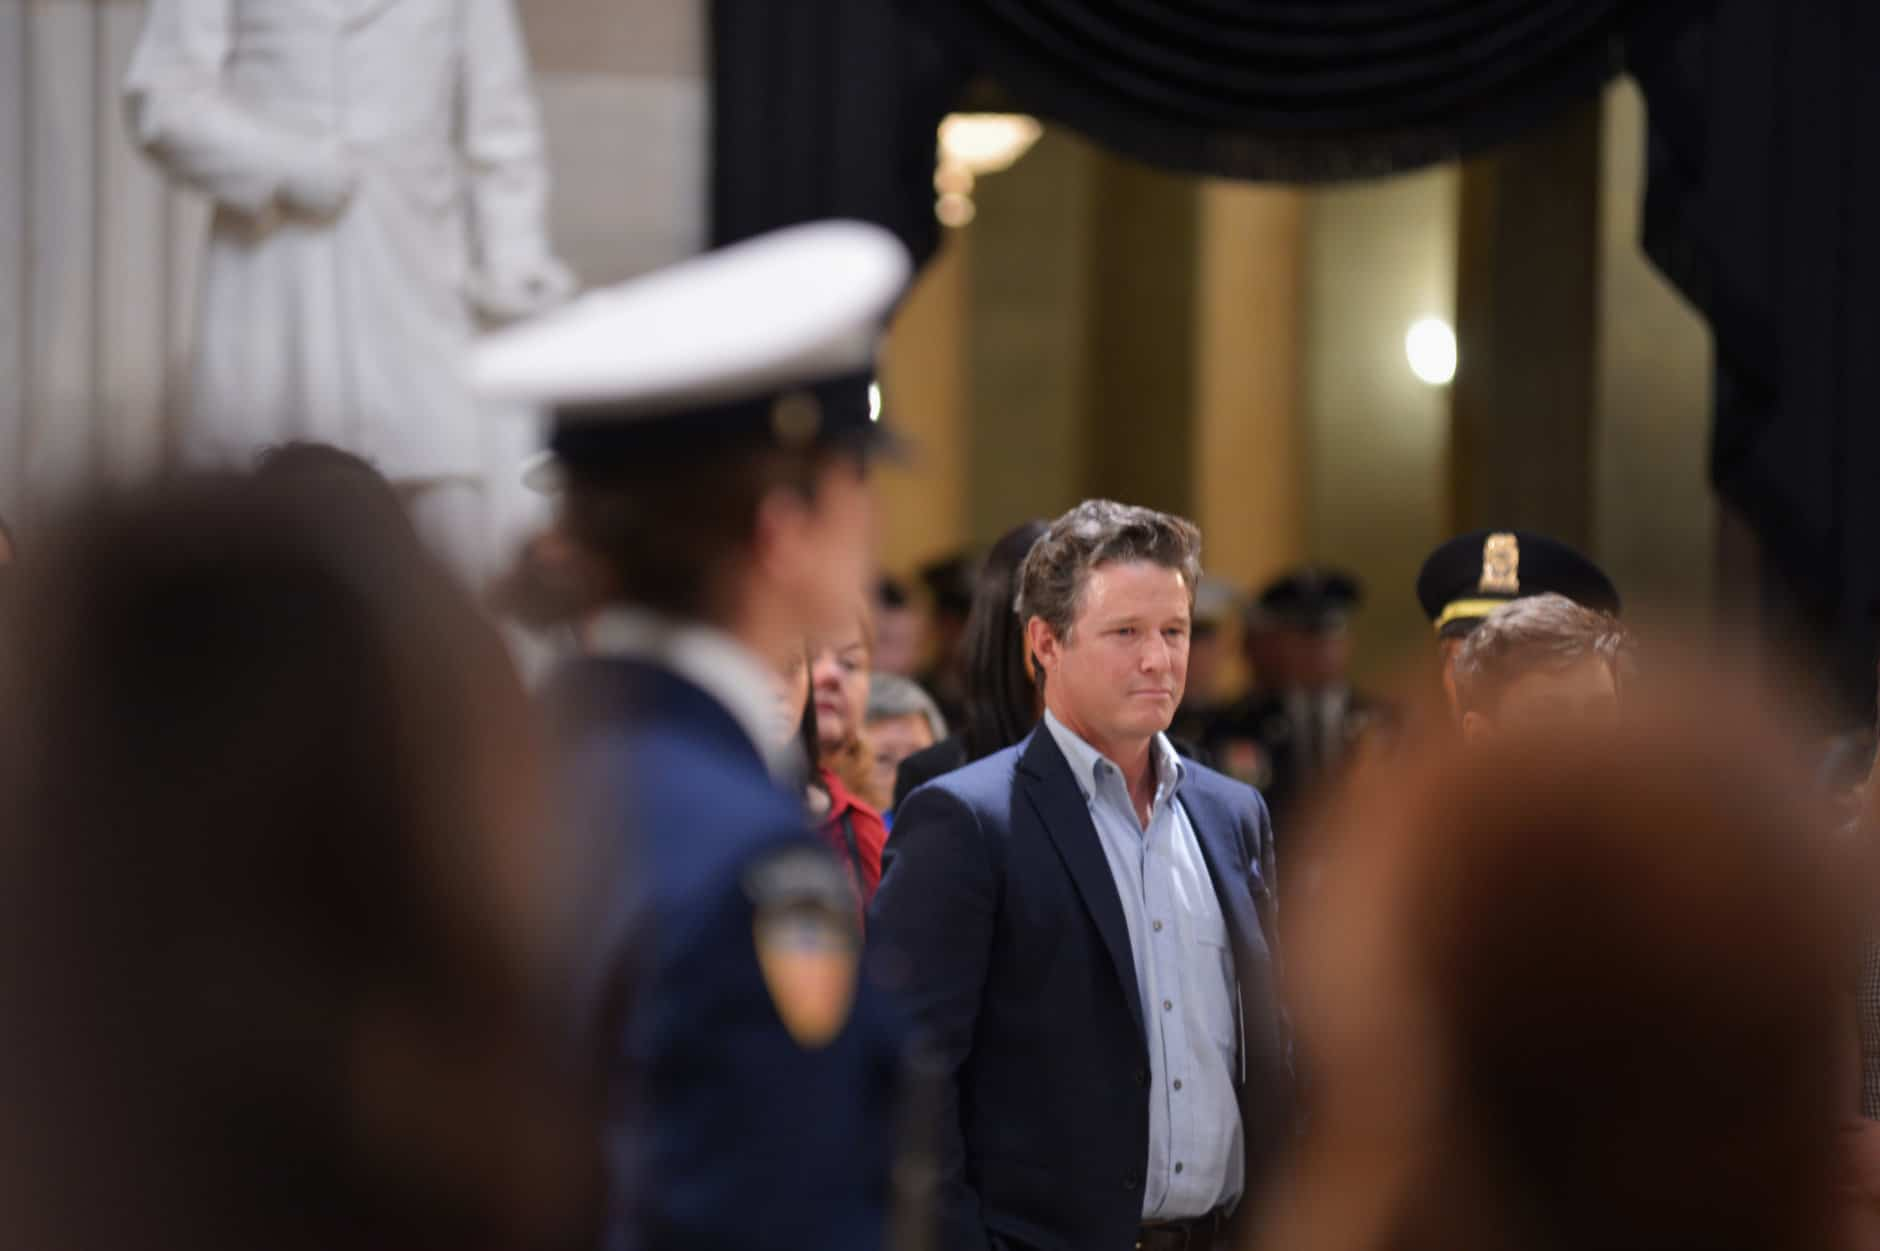 "Billy Bush, nephew of the late President George H.W. Bush, attends the lying-in-state on December 4, 2018. (Courtesy Shannon Finney/<a href=""https://www.shannonfinneyphotography.com/index"" target=""_blank"" rel=""noopener noreferrer"">shannonfinneyphotography.com</a>)"